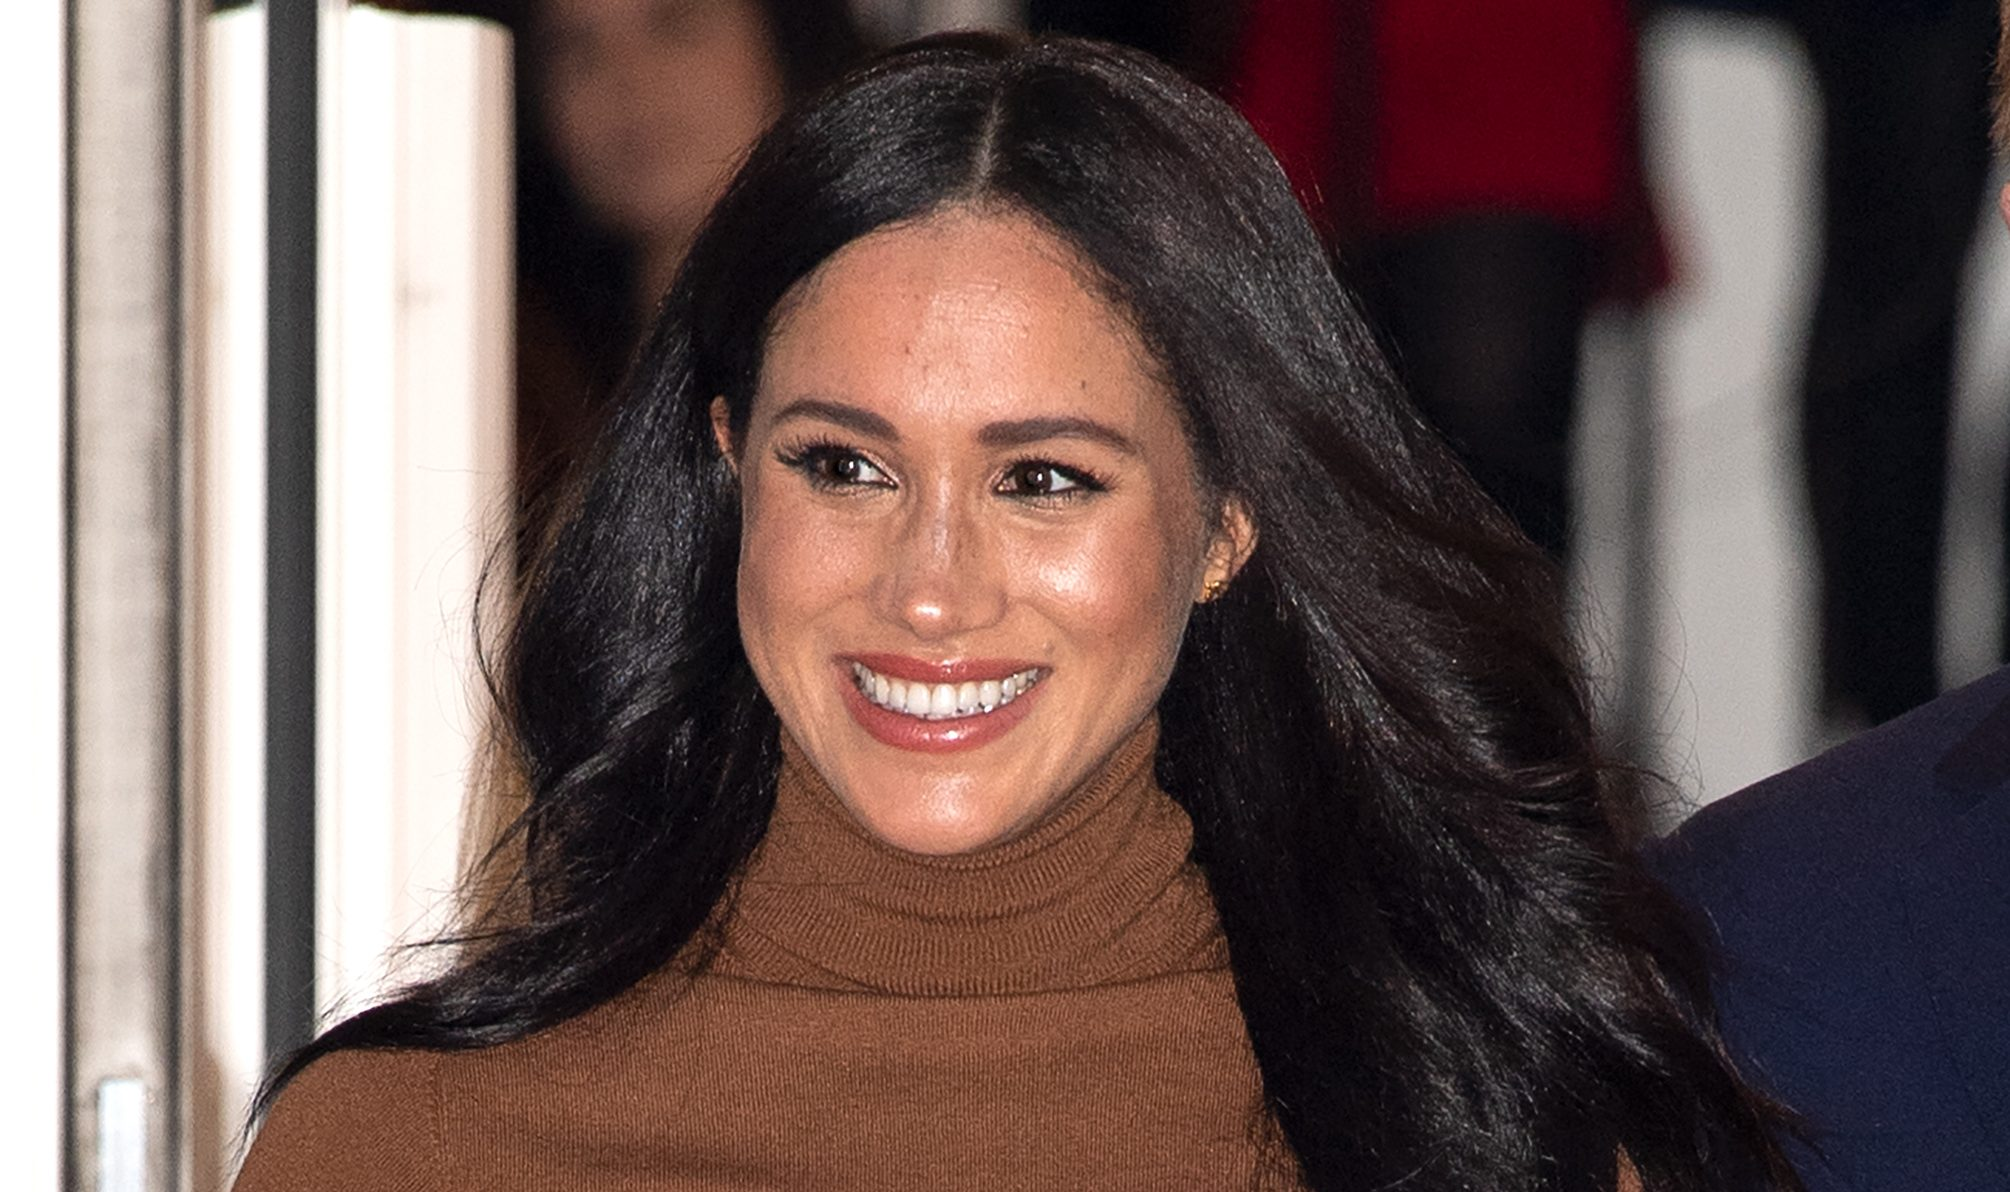 Meghan 'may never return to live in Britain' as Frogmore Cottage staff 'axed'